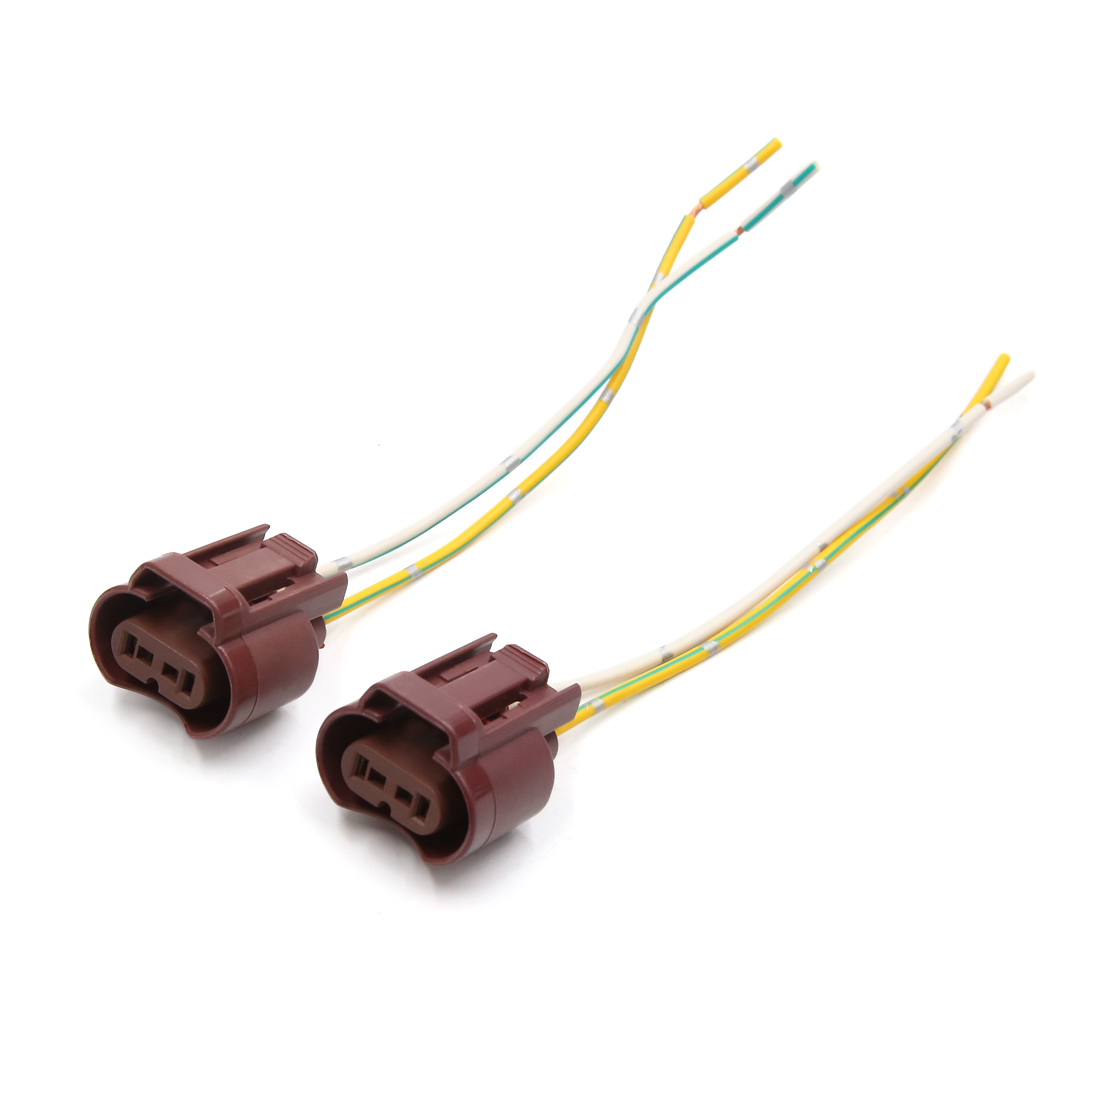 hight resolution of 2 pcs 9006 hb4 extension wiring harness socket wire for headlight fog light